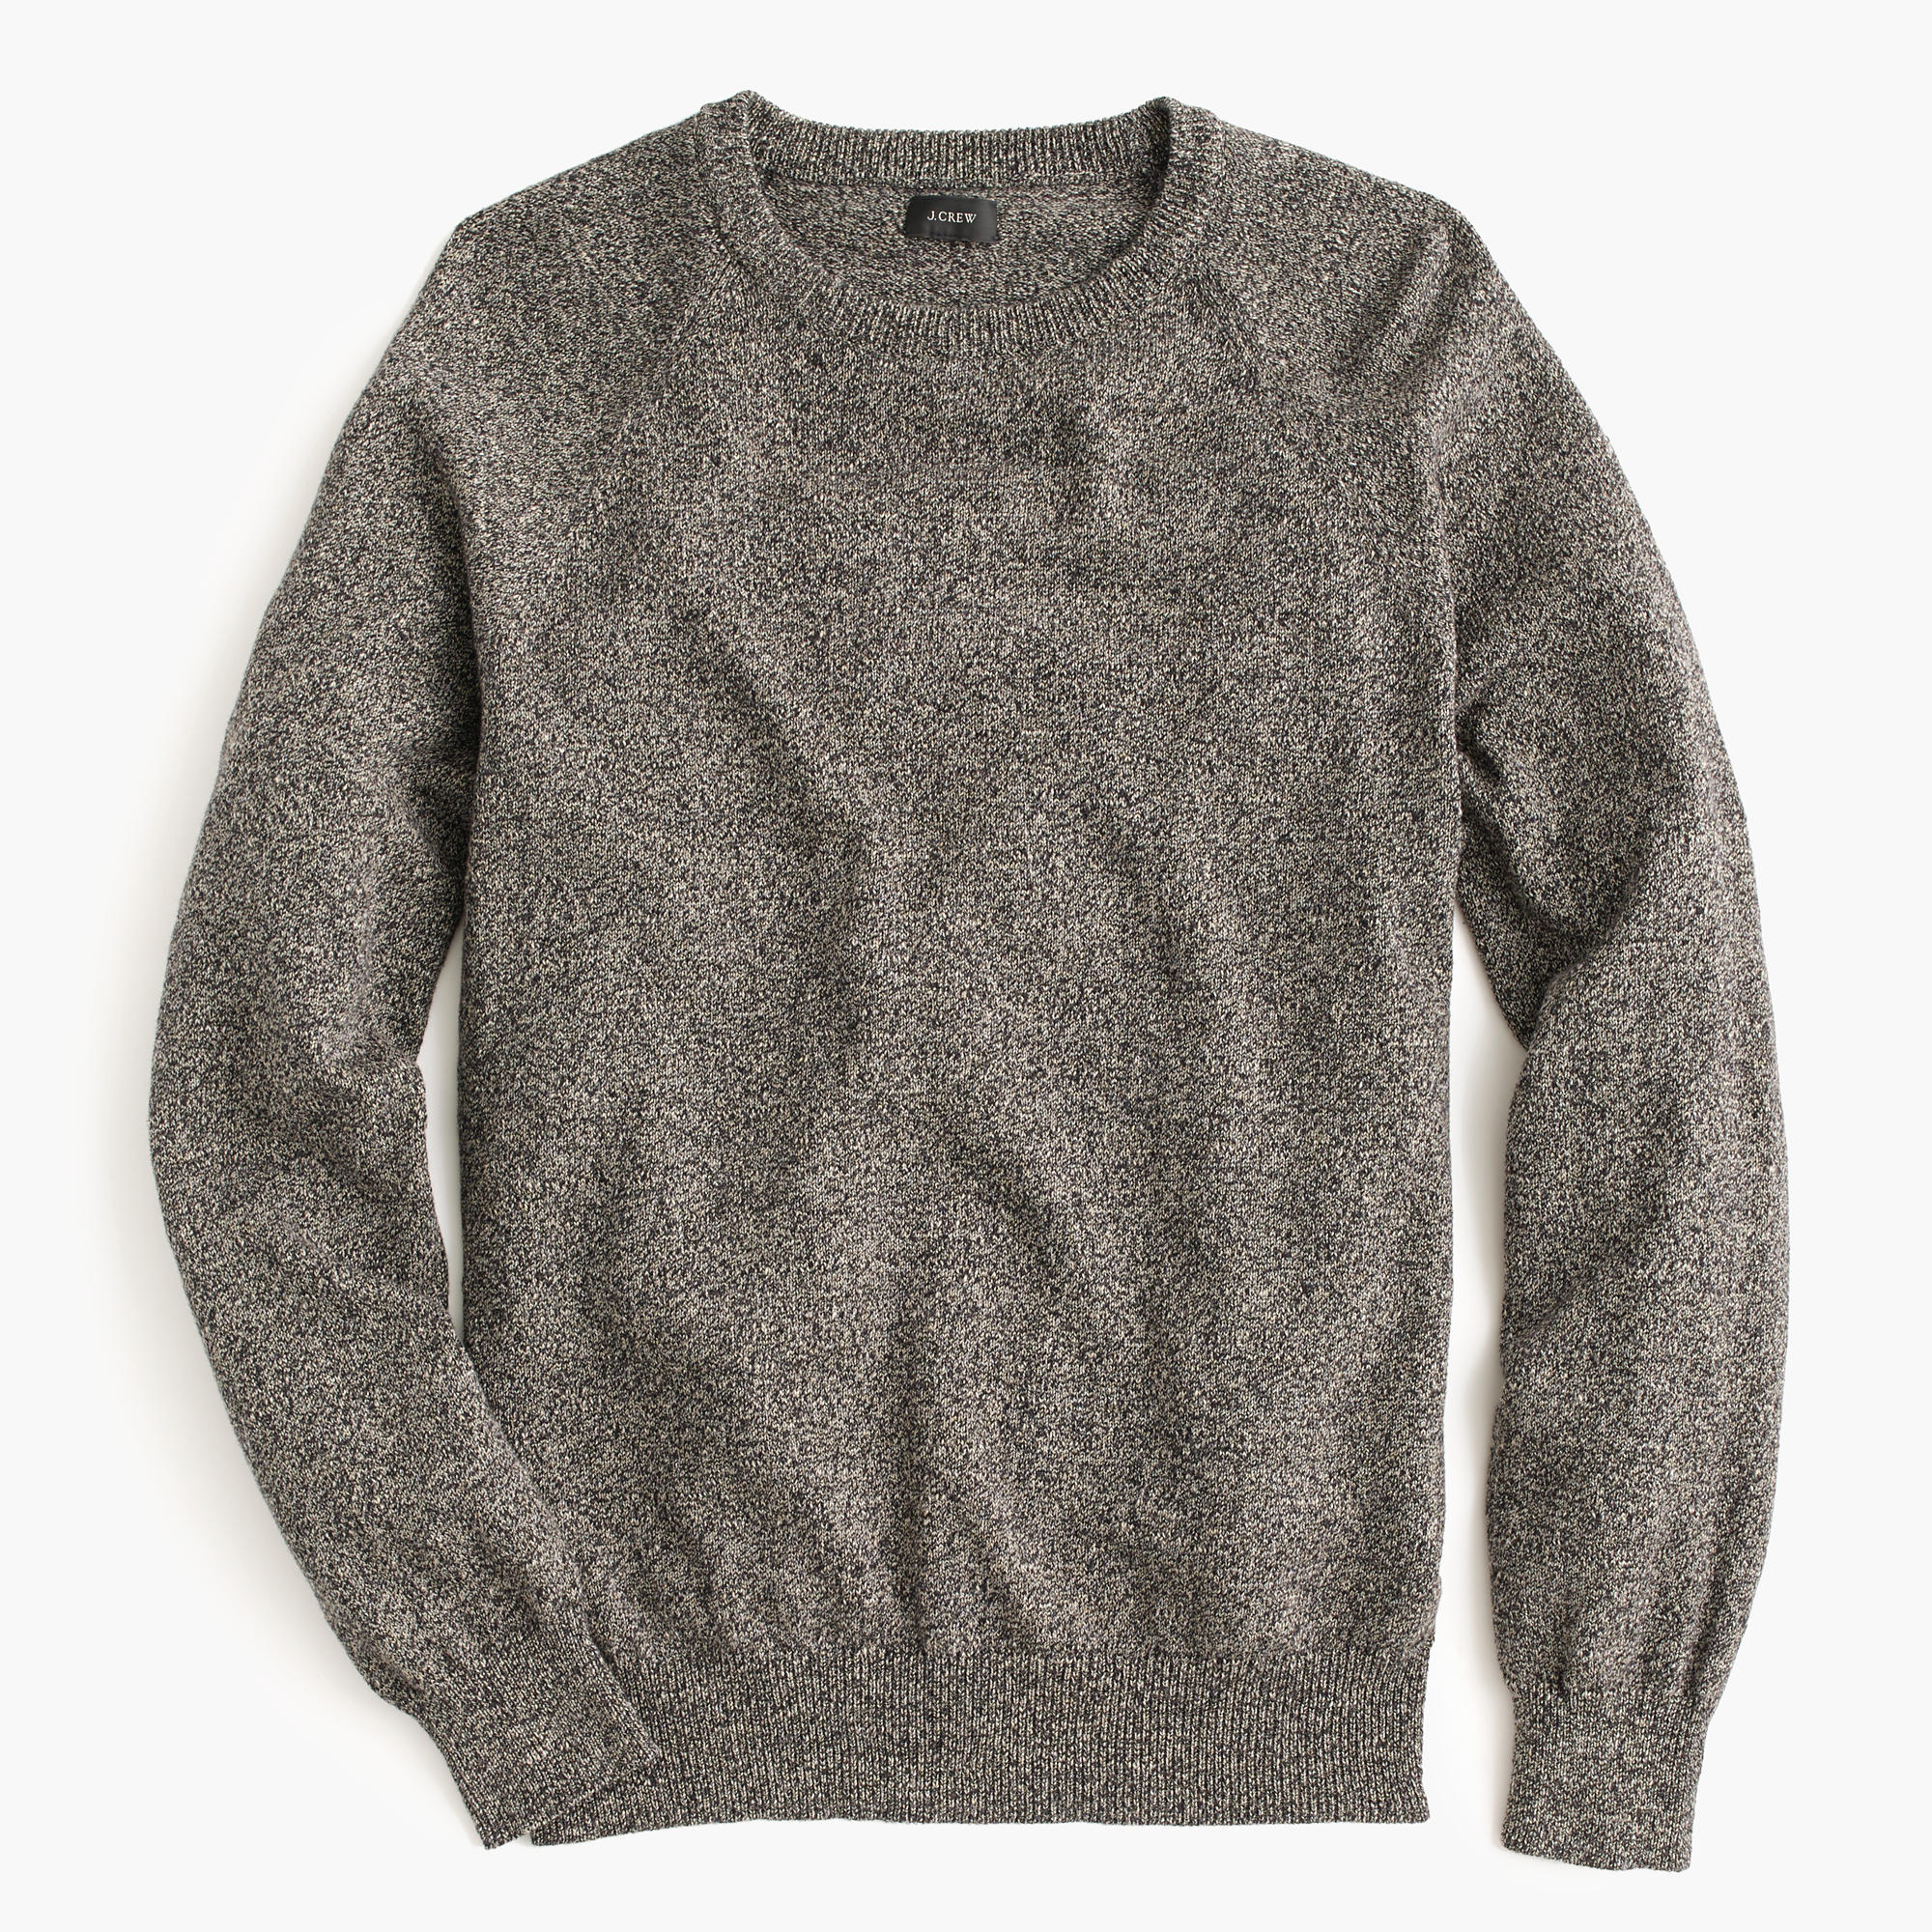 Shop Marled Sweater. Find your perfect size online at the best price at New York & Company. Shop Marled Sweater. Find your perfect size online at the best price at New York & Company. Today Online Only Everything Buy More, Save More! 50% Off Any 4+ Items, 40% Off Any 3 Items, or 30% Off Any 1 or 2 Items + All Orders Ship Free! Click for Info.